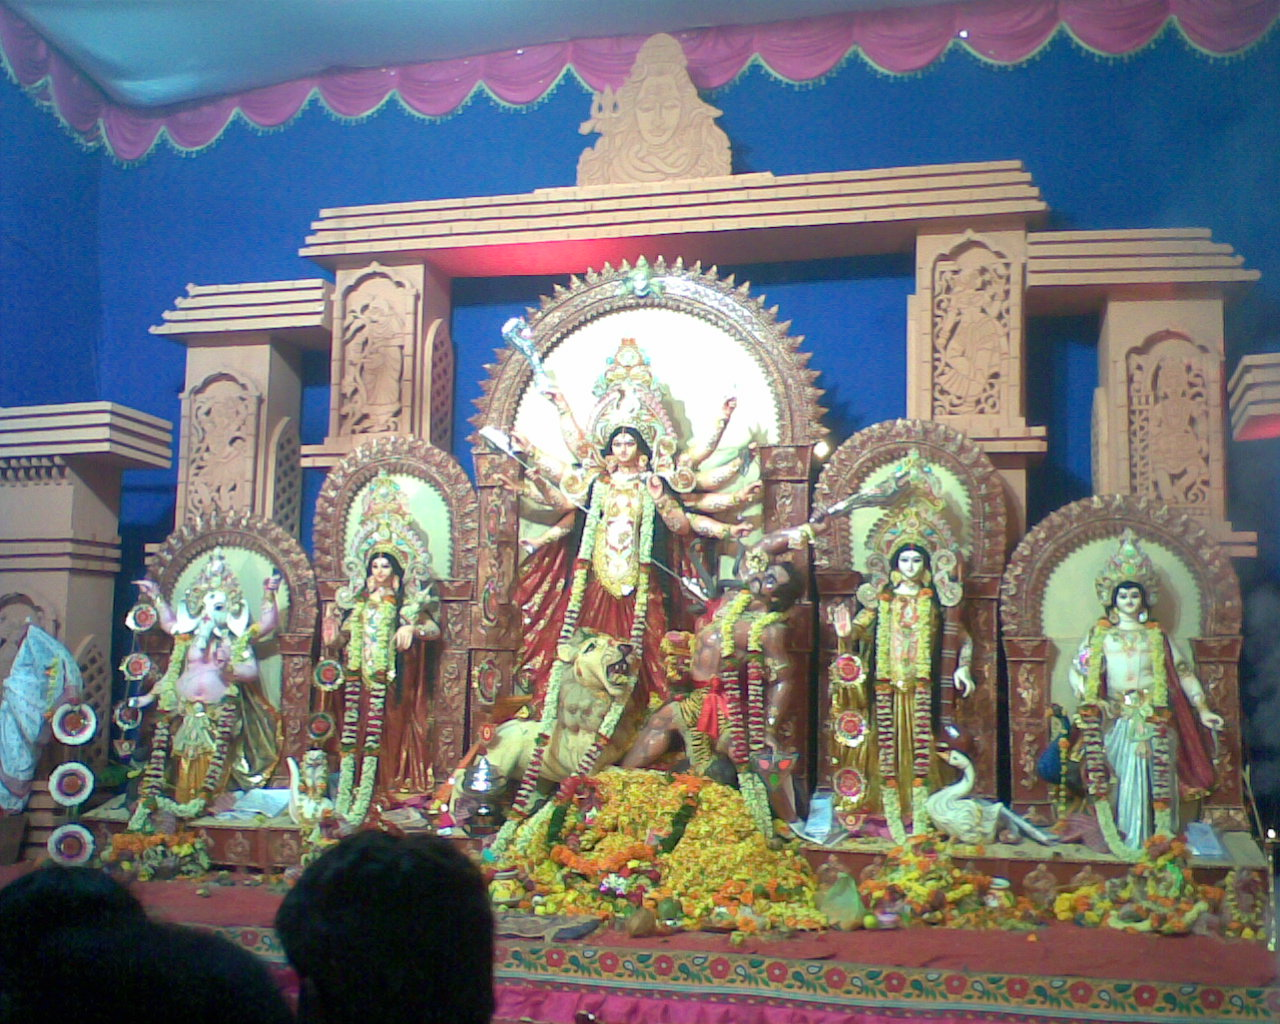 Durga pujas in pune shamikeverything easily one of the most visited pandals in pune during the pujas thousands come to this particular historic venue the densely populated mandap creates a thecheapjerseys Choice Image